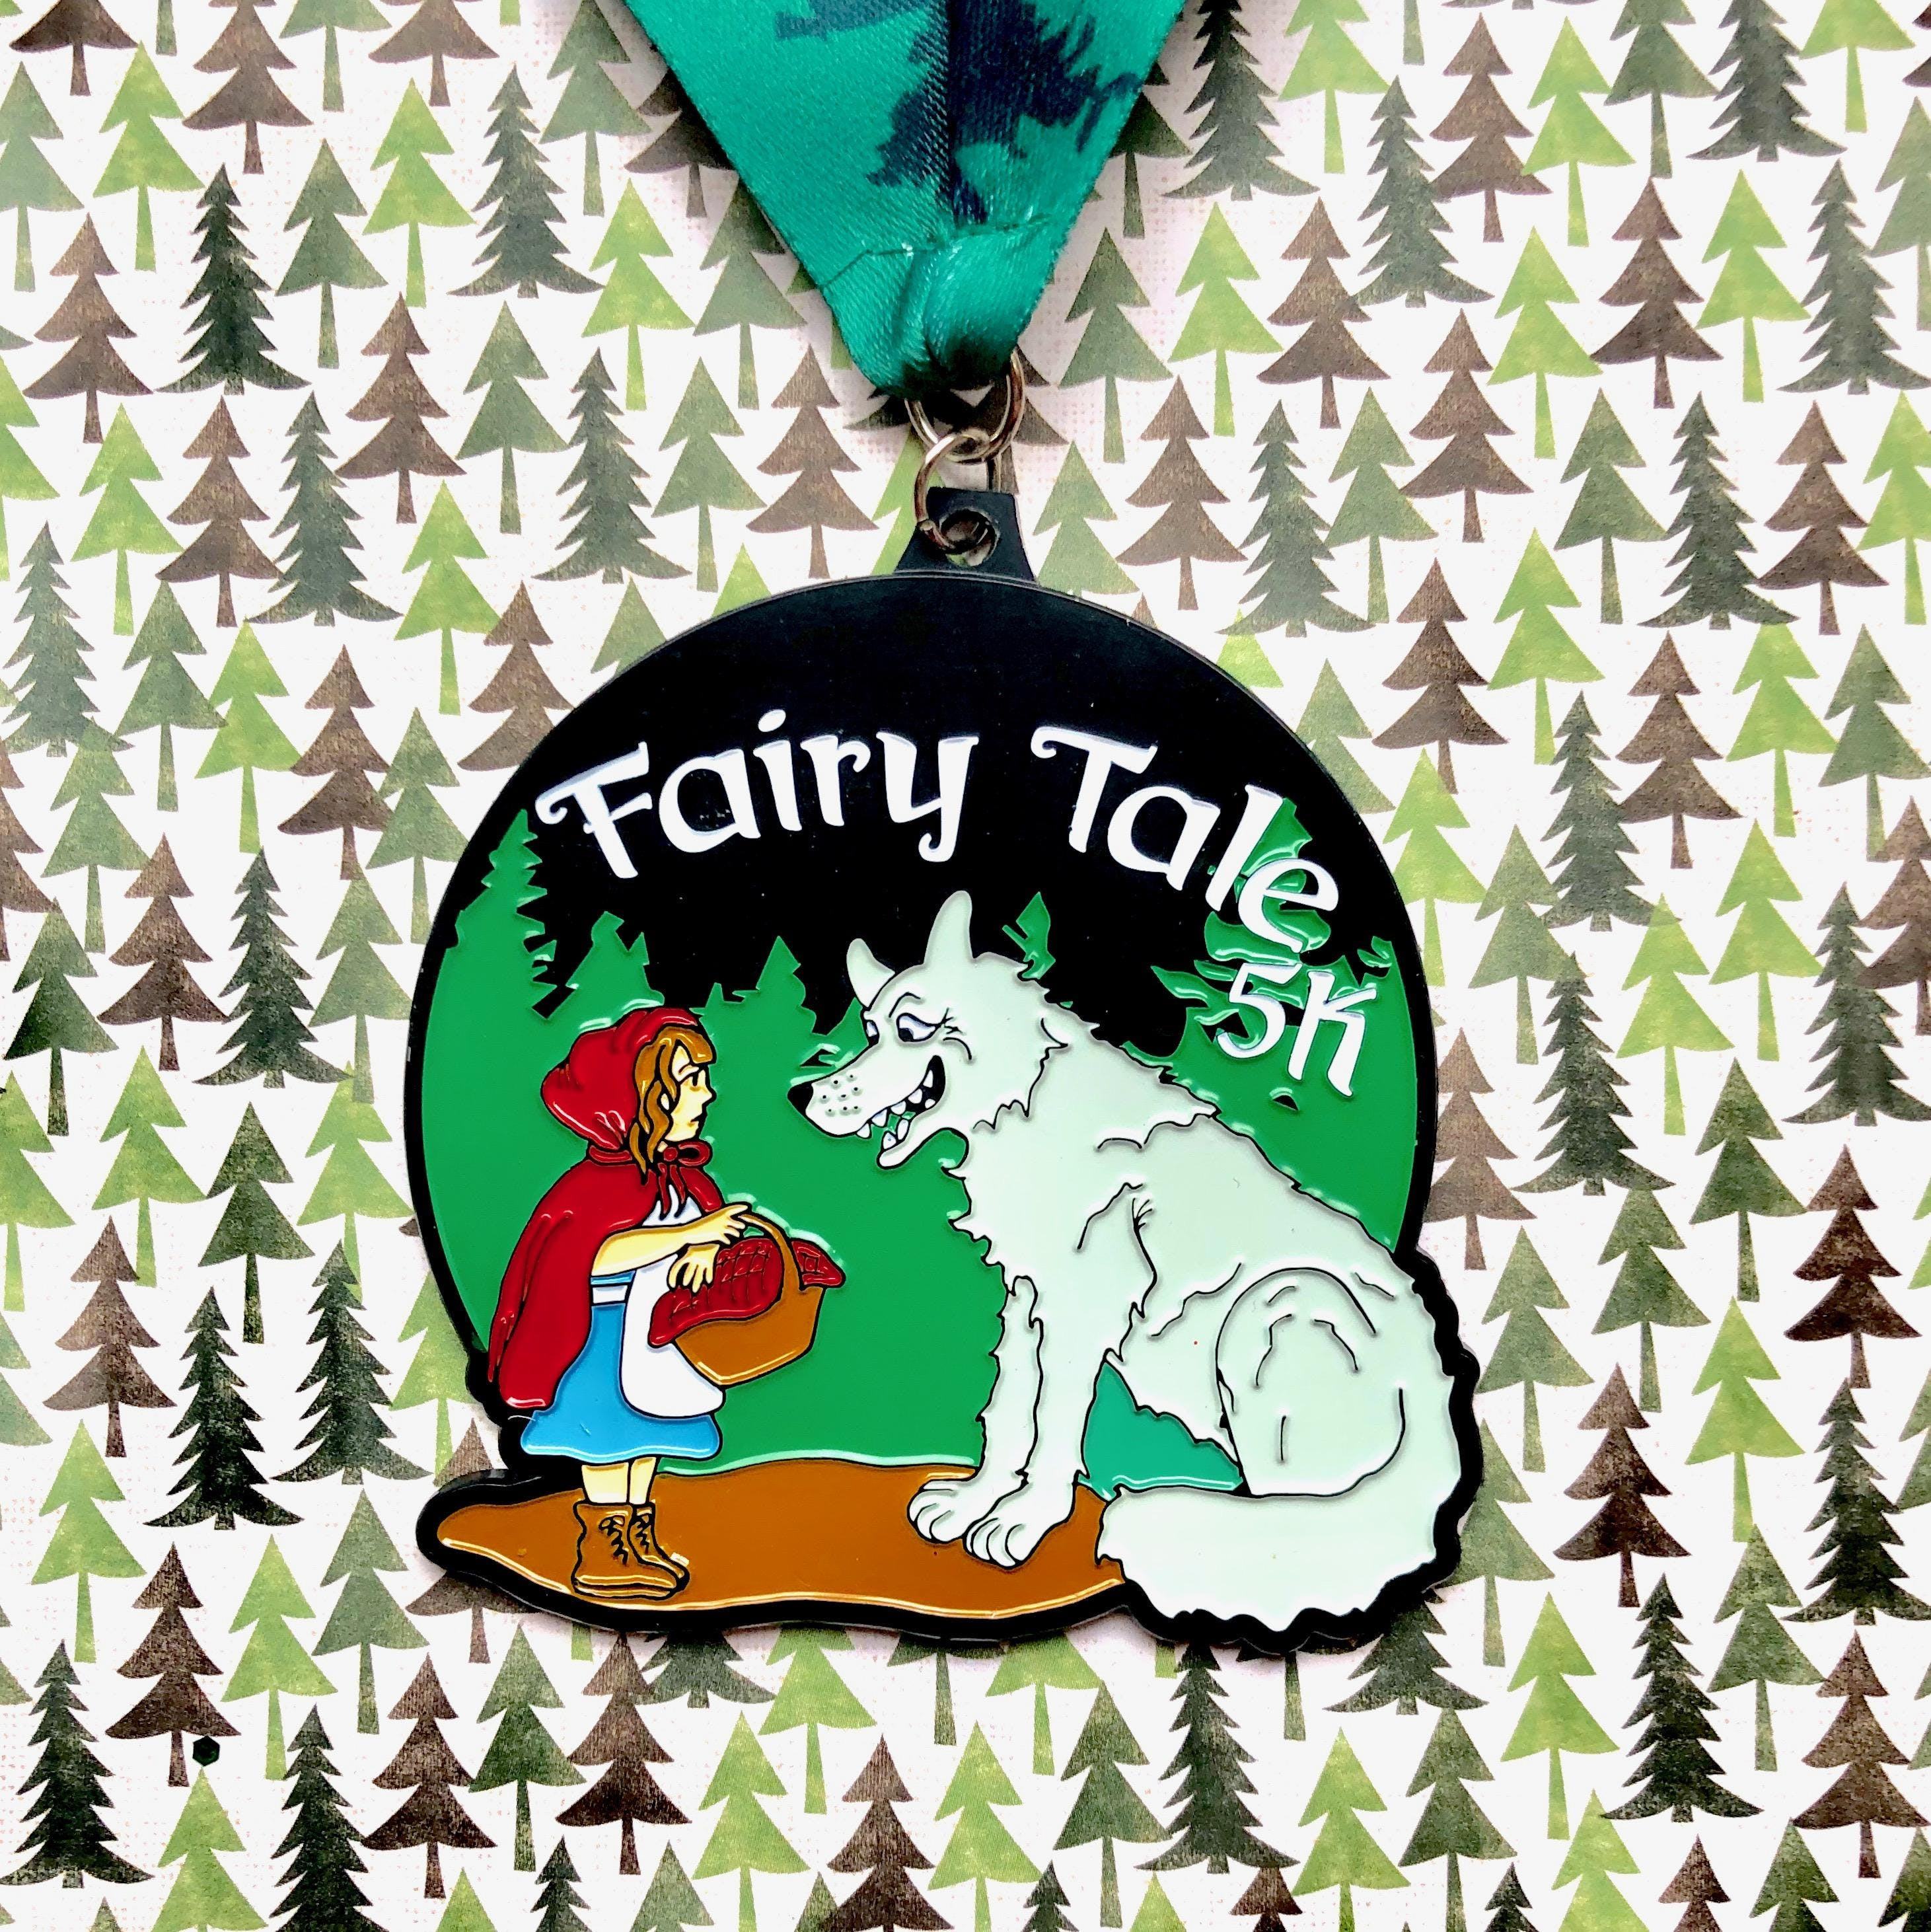 Now Only $10! 2019 The Fairy Tale 5K -Tucson